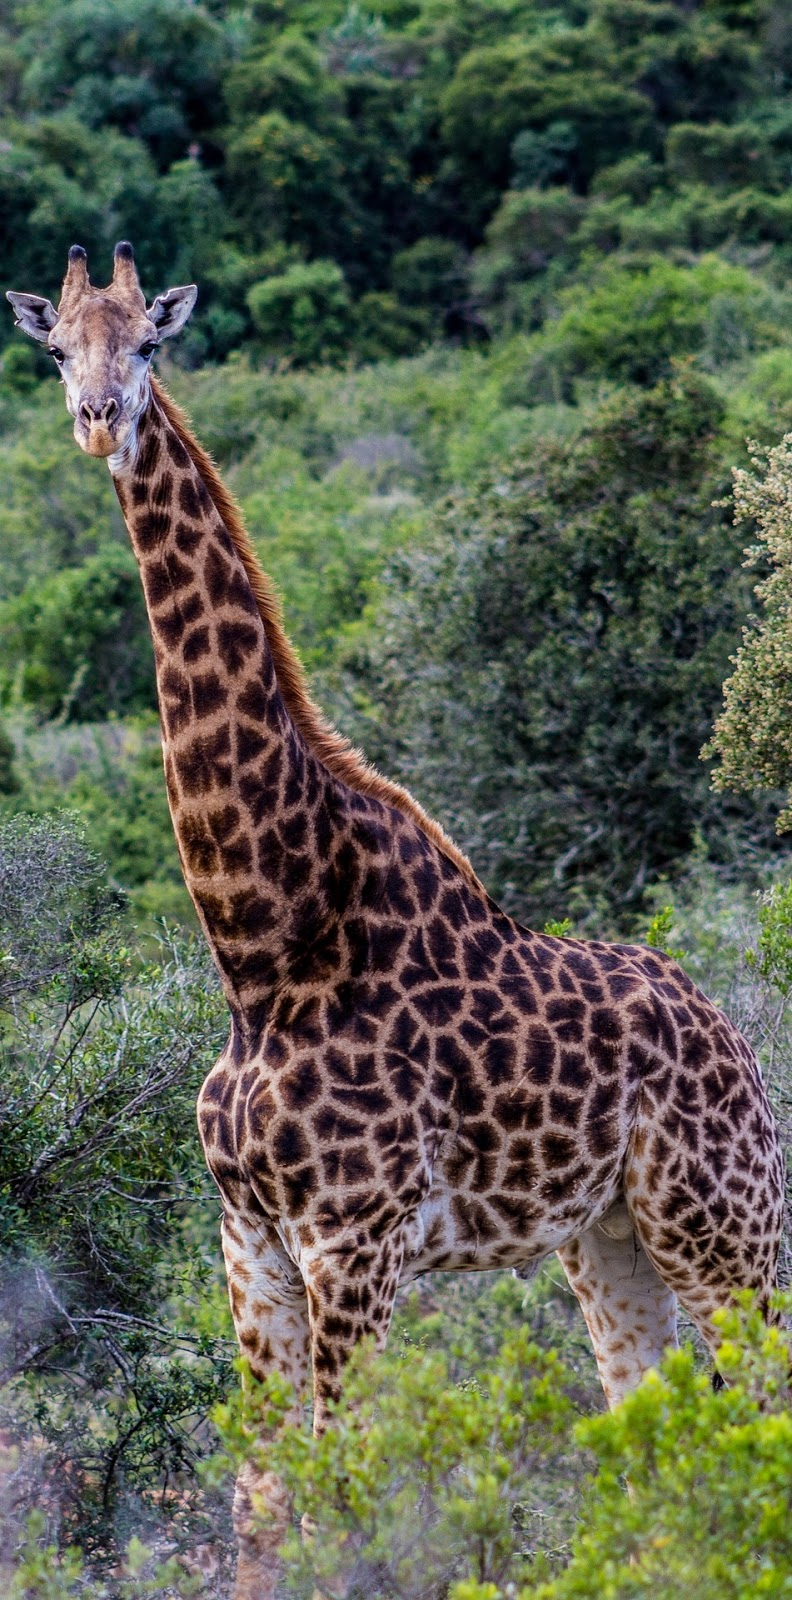 A giraffe in the wilderness.